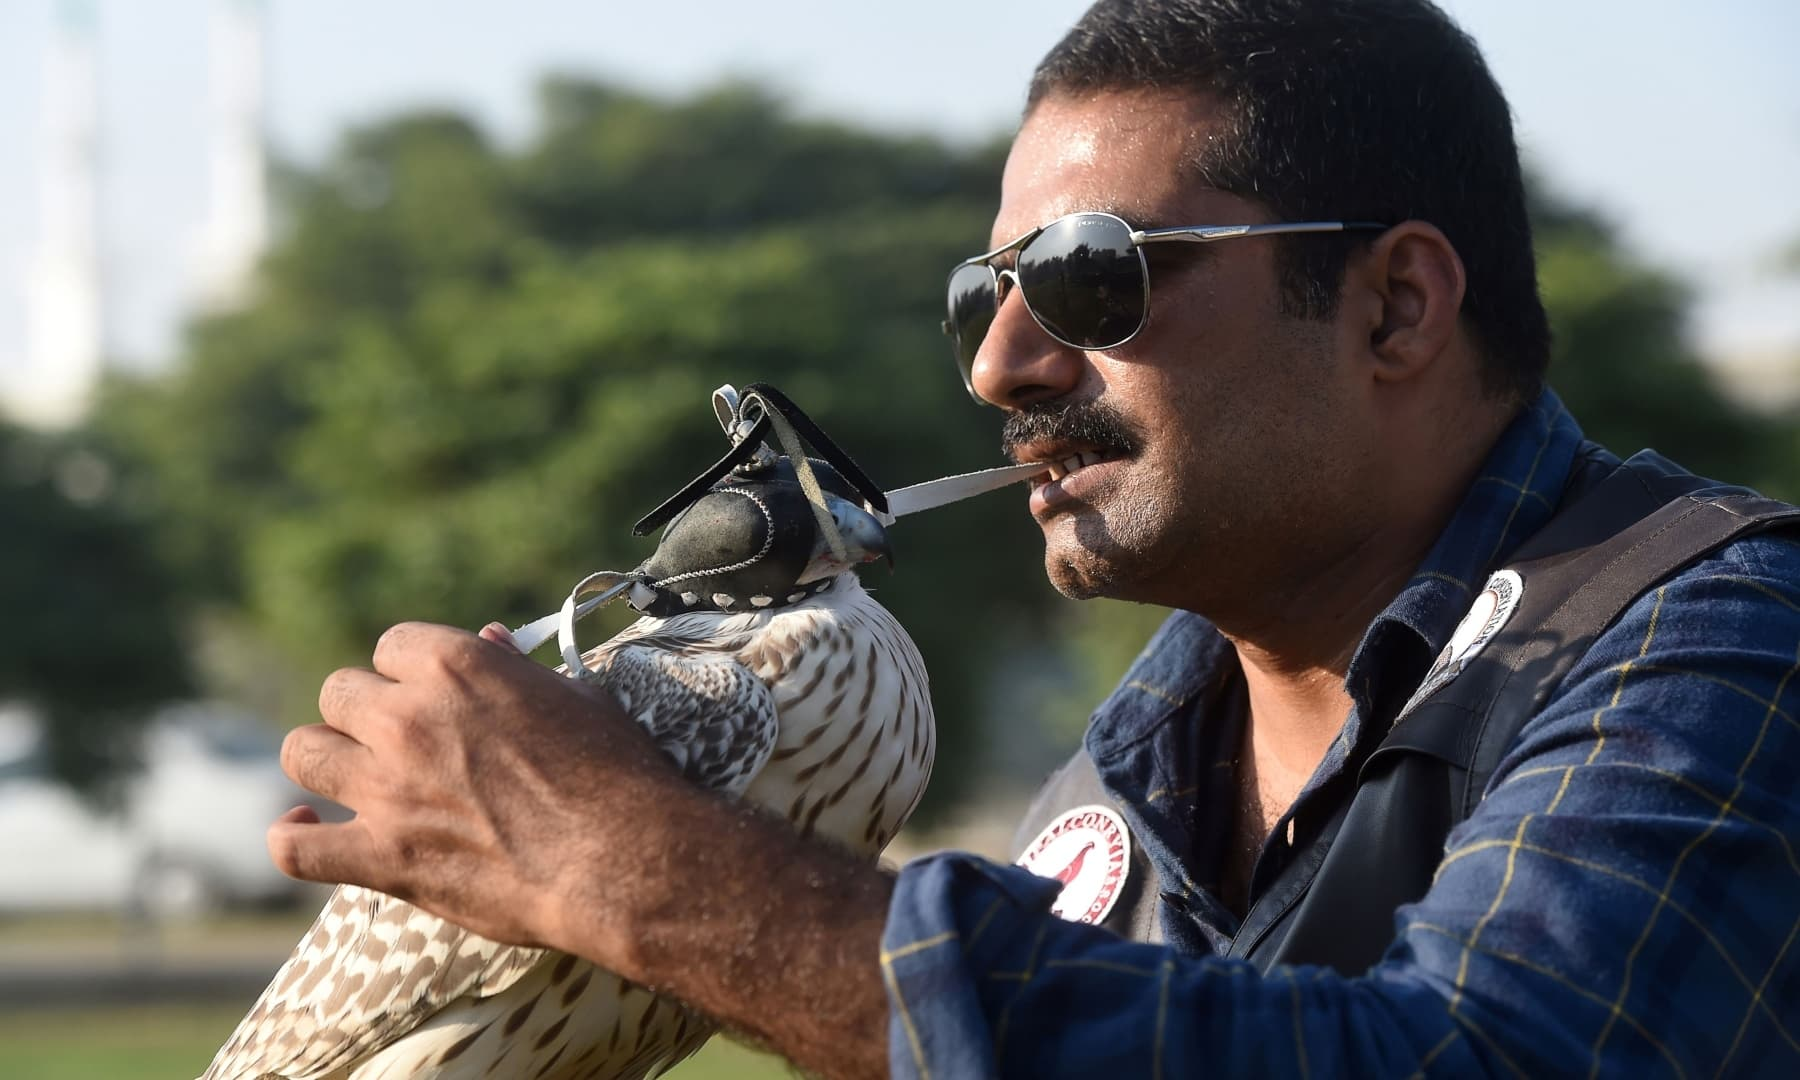 In this picture taken on November 23, 2020, Kamran Khan Yousafzai, a conservationist and president of the Pakistan Falconry Association, puts an eye mask on a falcon as he works on the rehabilitation of dozens of falcons seized by authorities from smugglers, in Karachi. — AFP